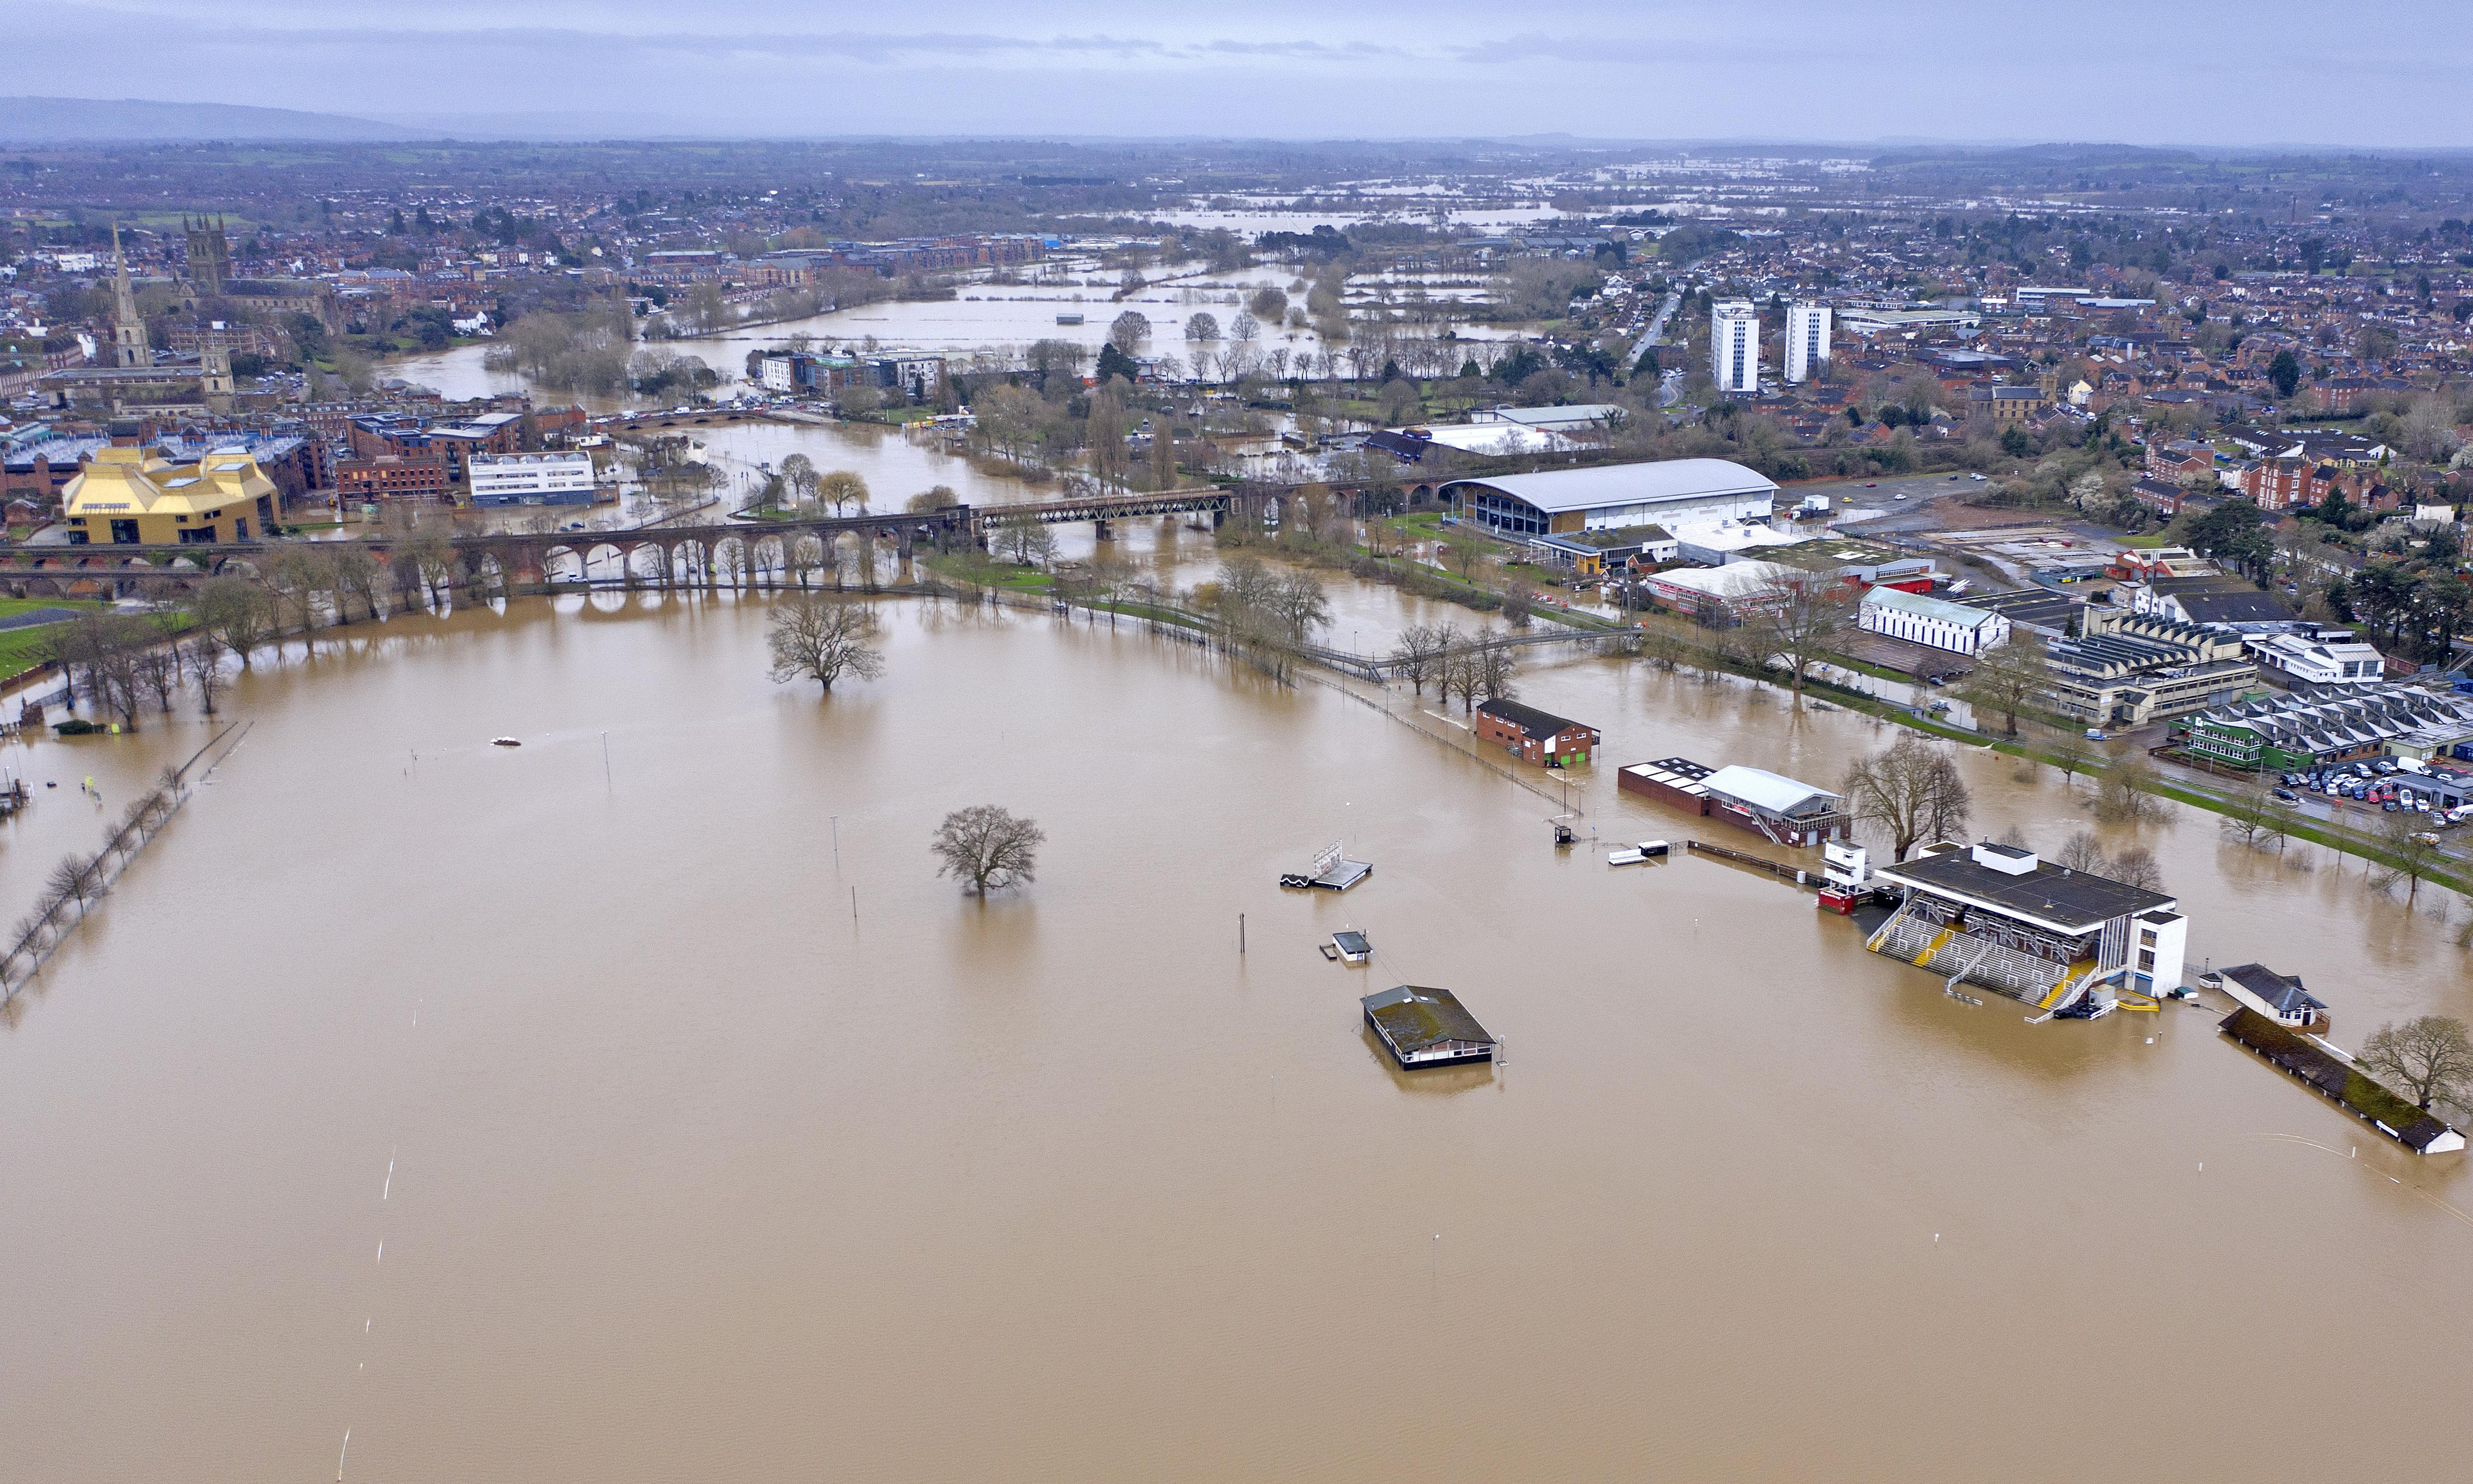 Tories ignored expert flood advice and courted austerity. Behold the results